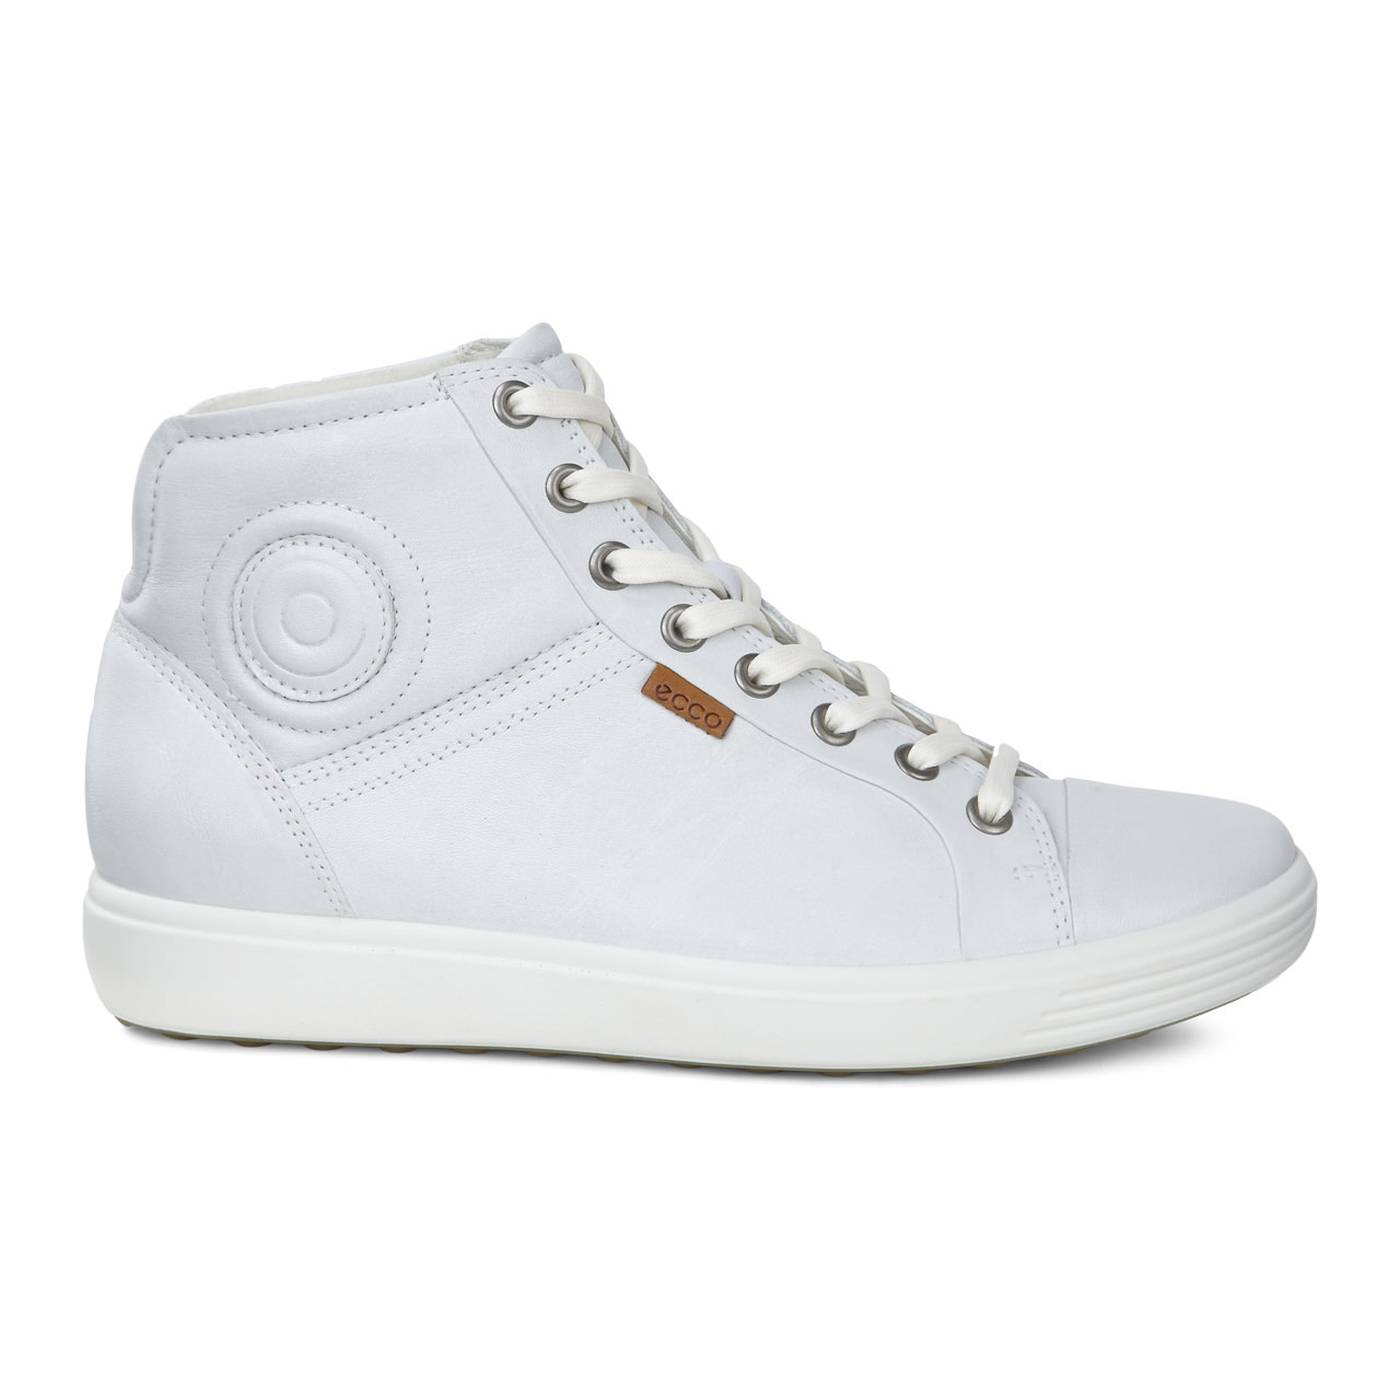 62e49c98e9bed ECCO Women s Soft Vii High Top